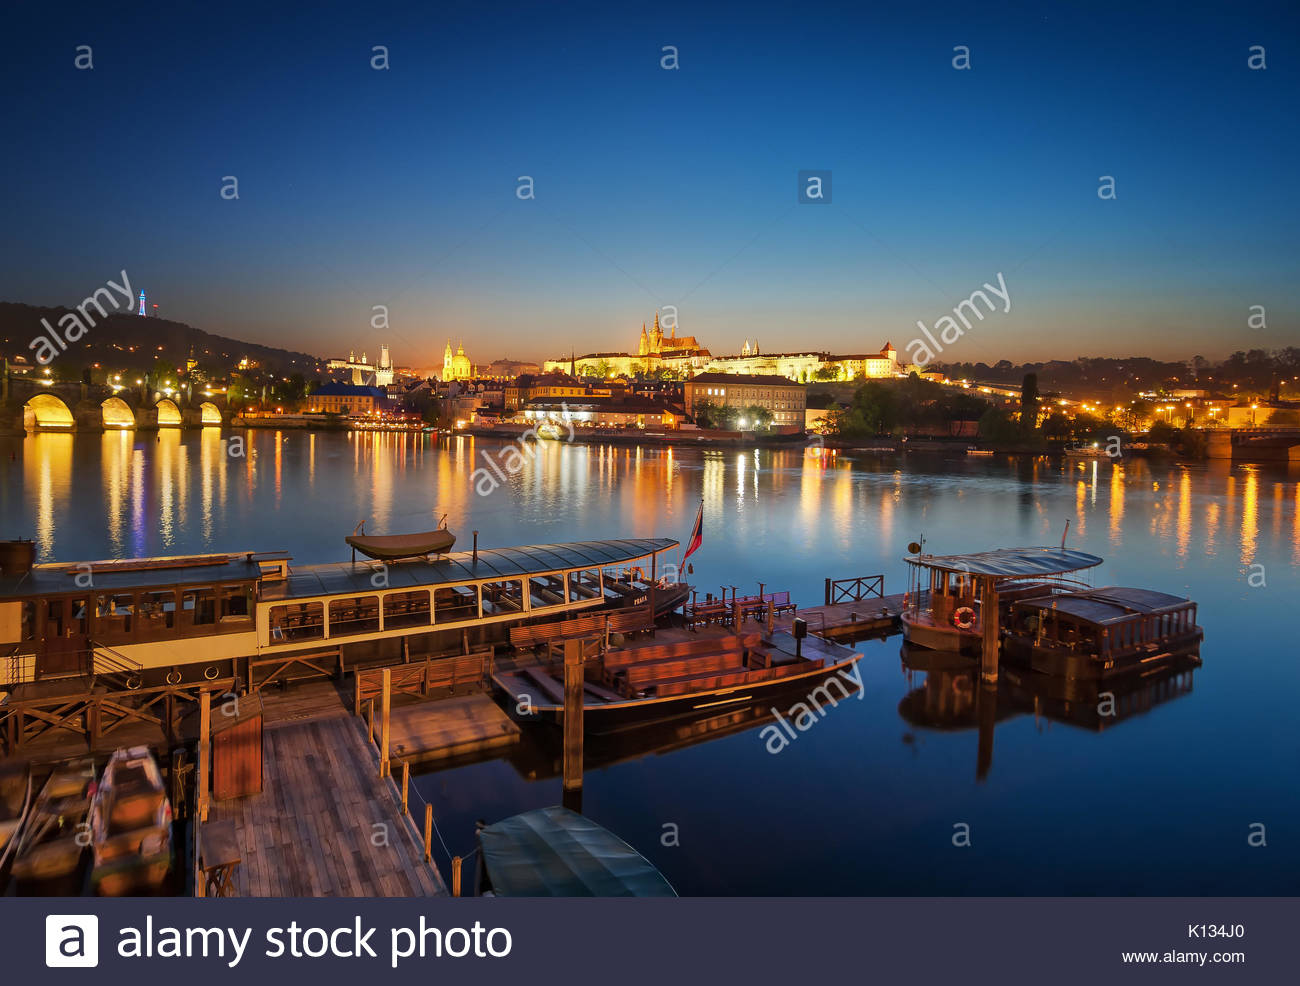 Boat dock during sunset near St. Vitus cathedral, Prague, Czech republic. - Stock Image